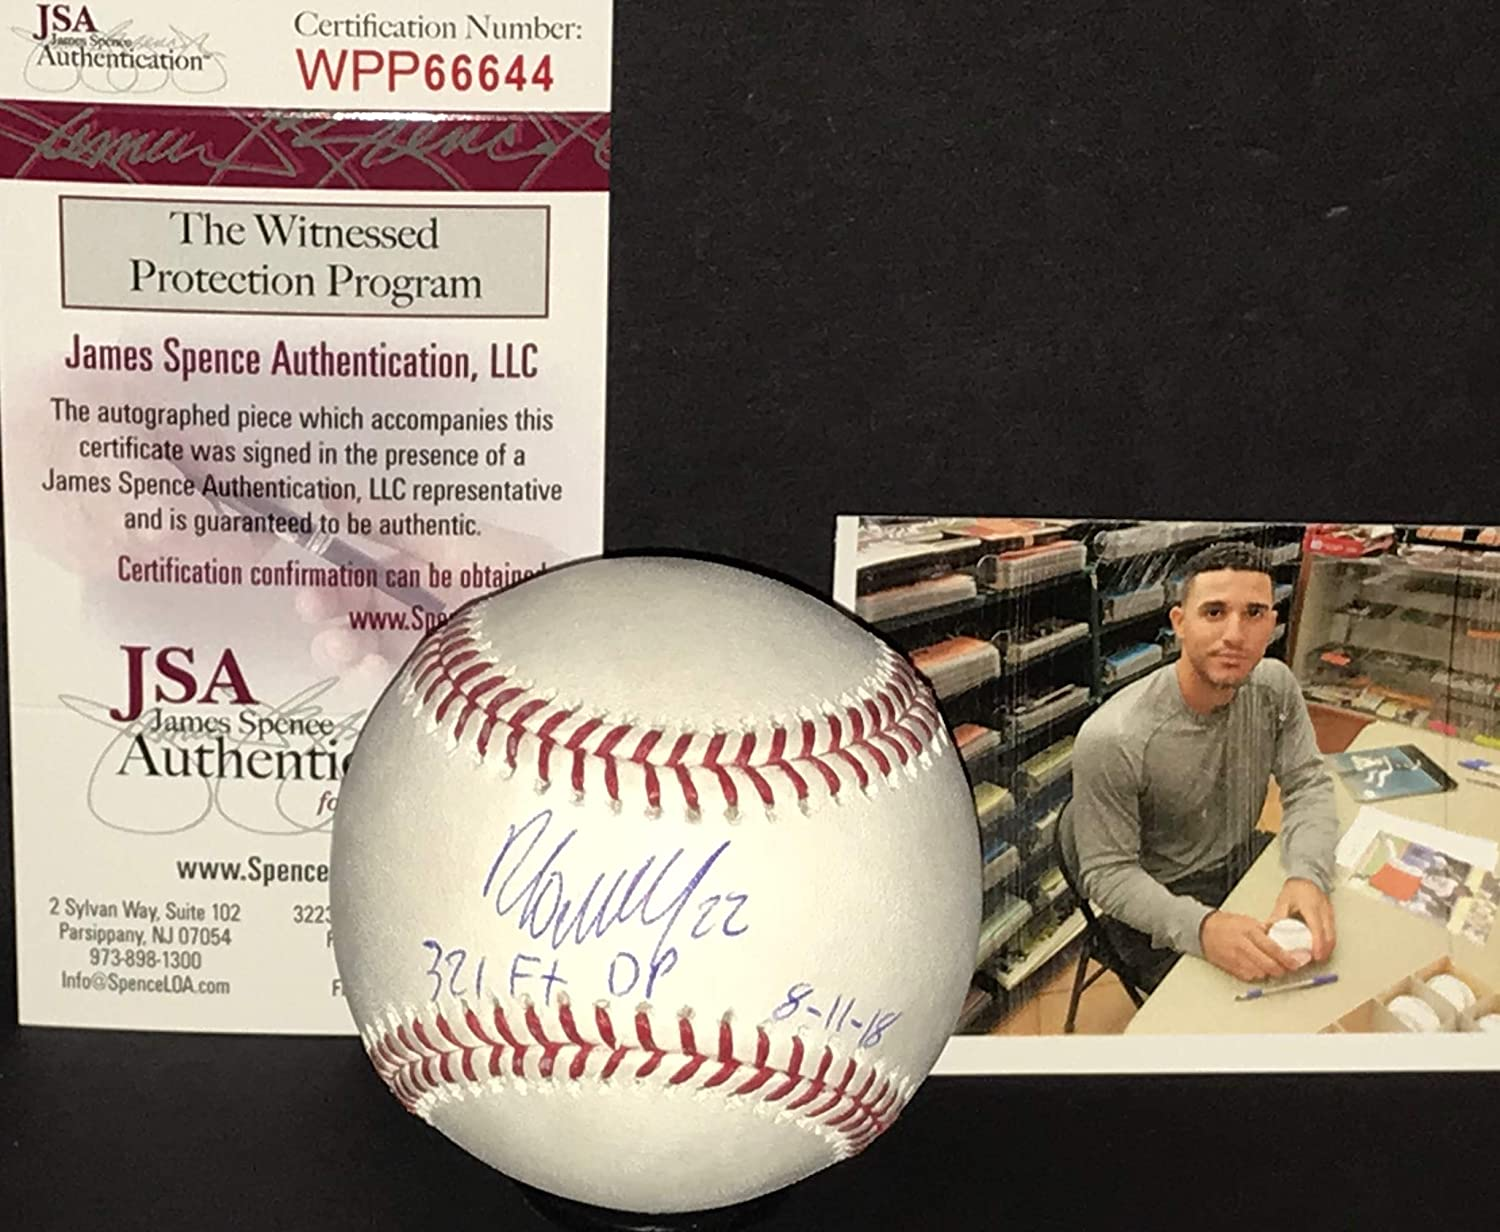 Ramon Laureano Oakland A's Autographed Signed Official Major League Baseball JSA WITNESS COA MLB DEBUT 321 FT DP 8-11-18 SidsGraphs